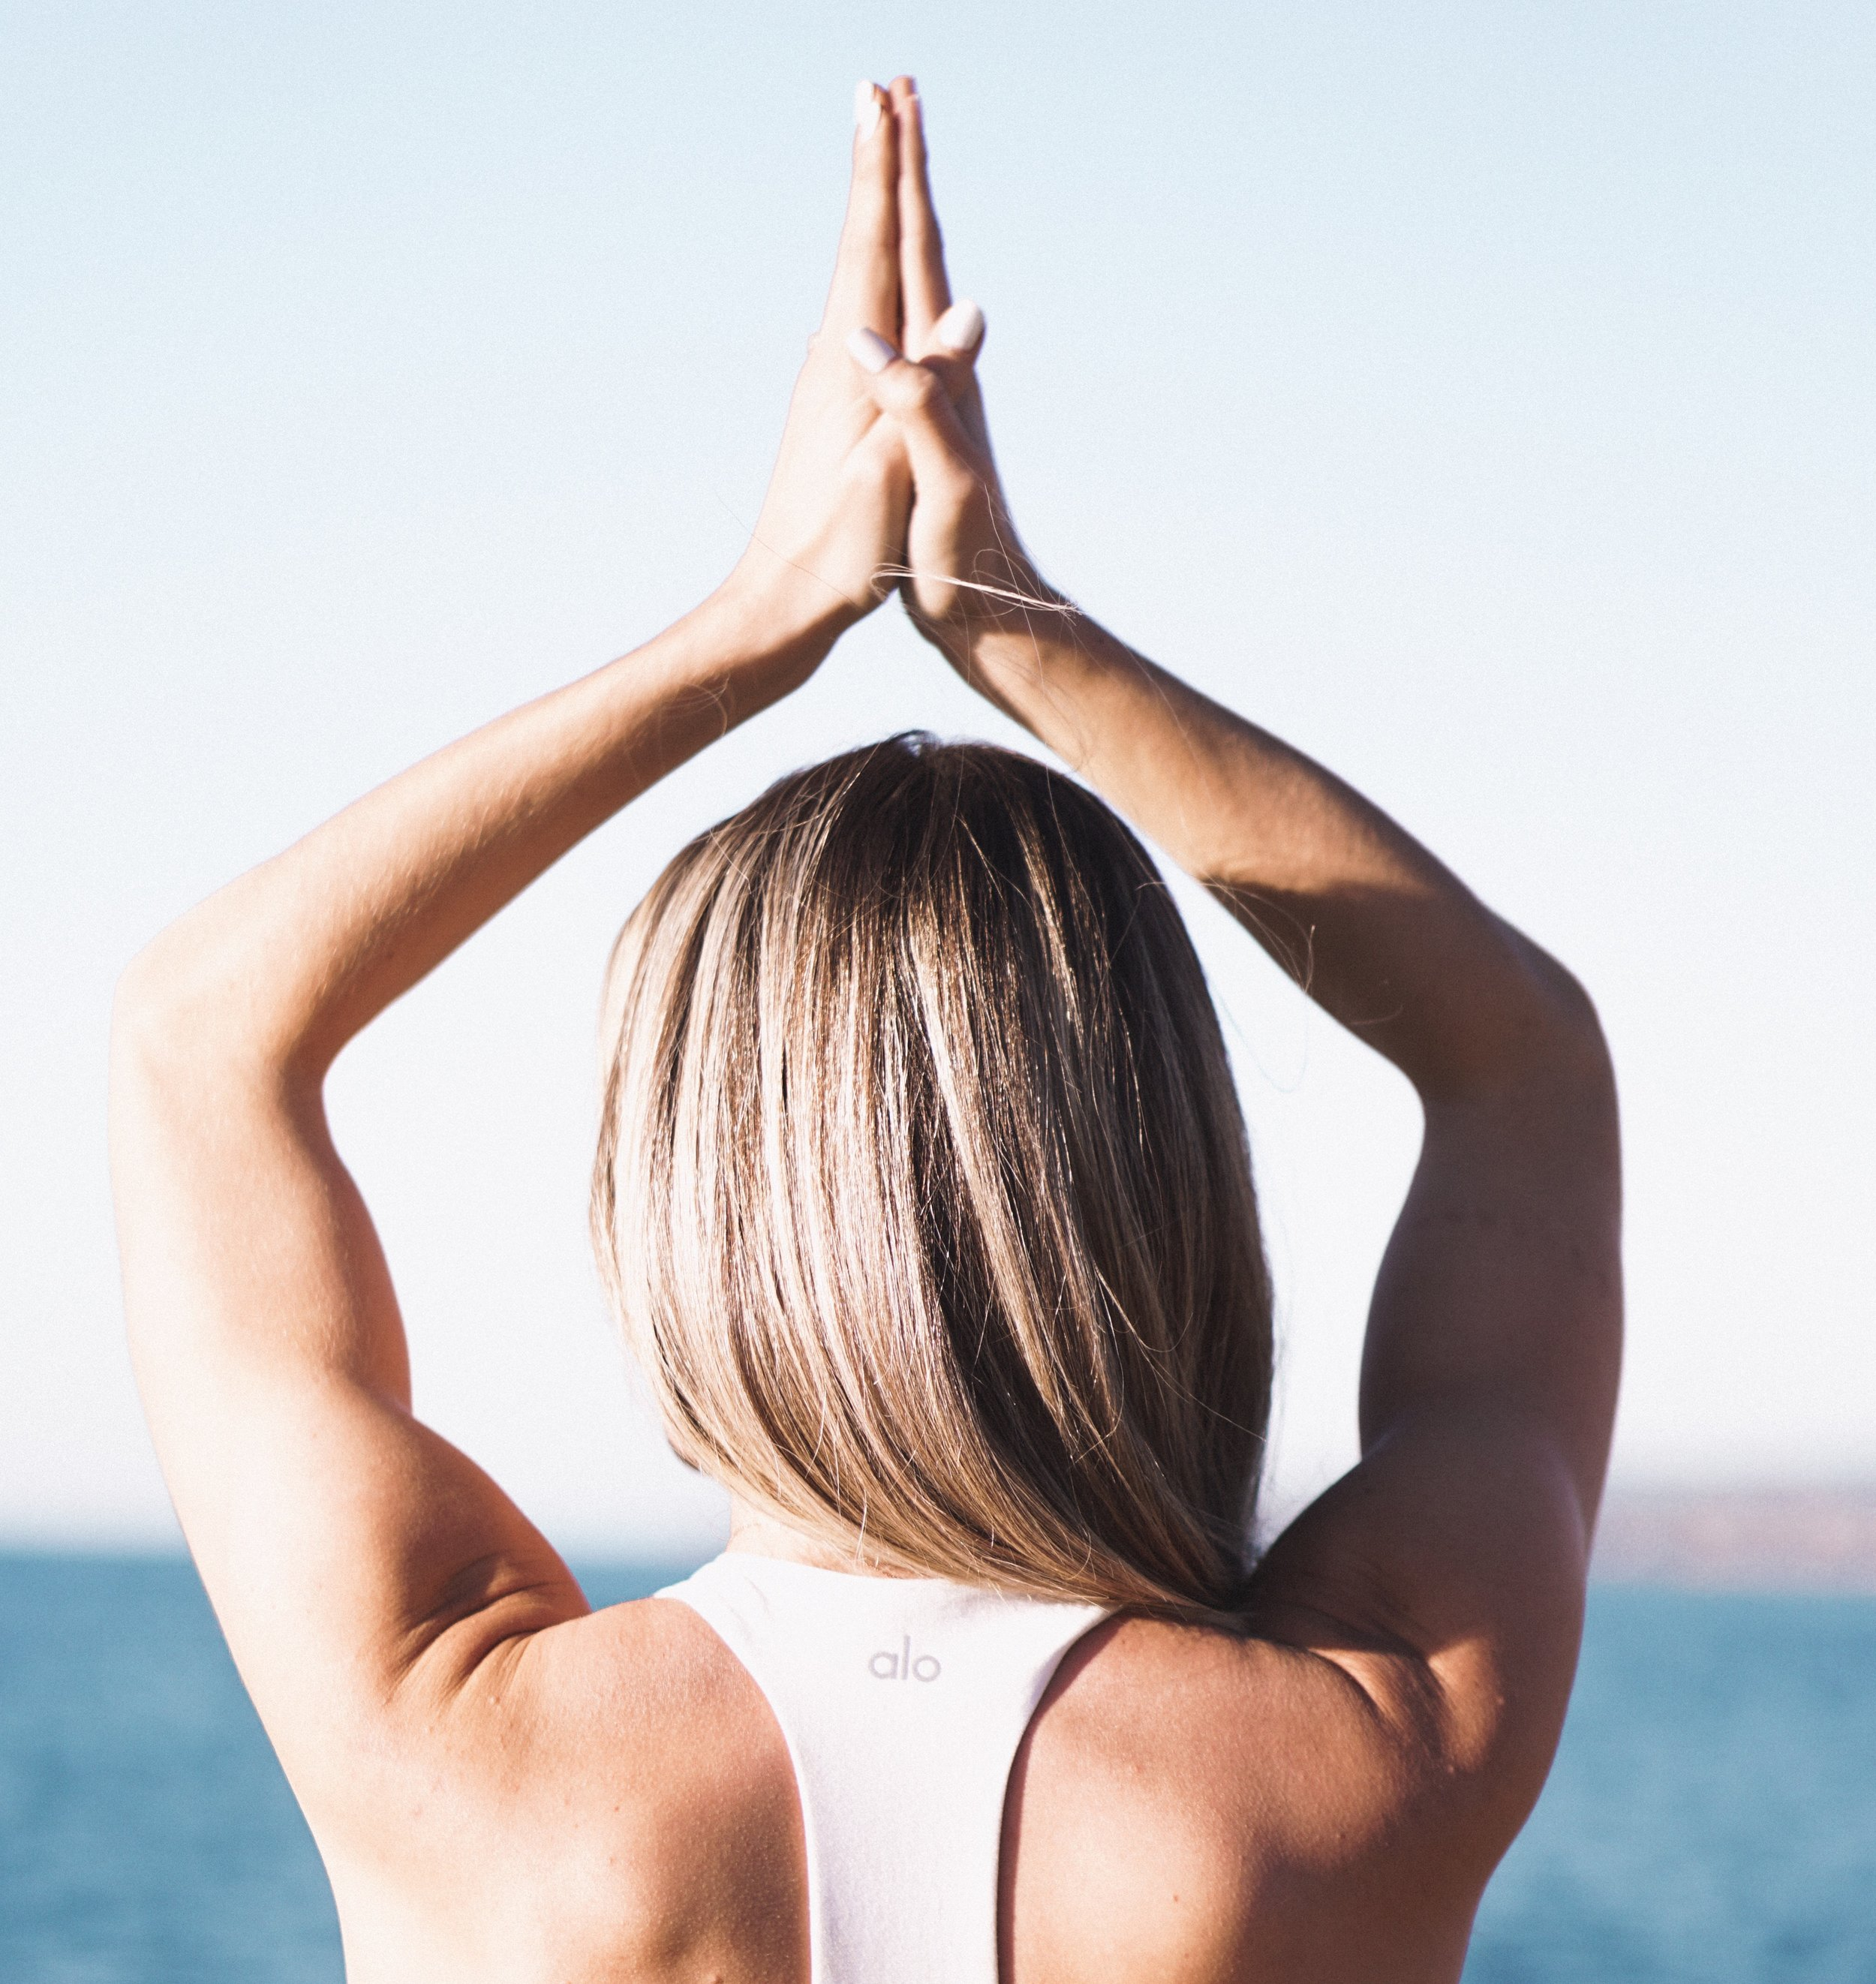 healing lower back pain from yoga